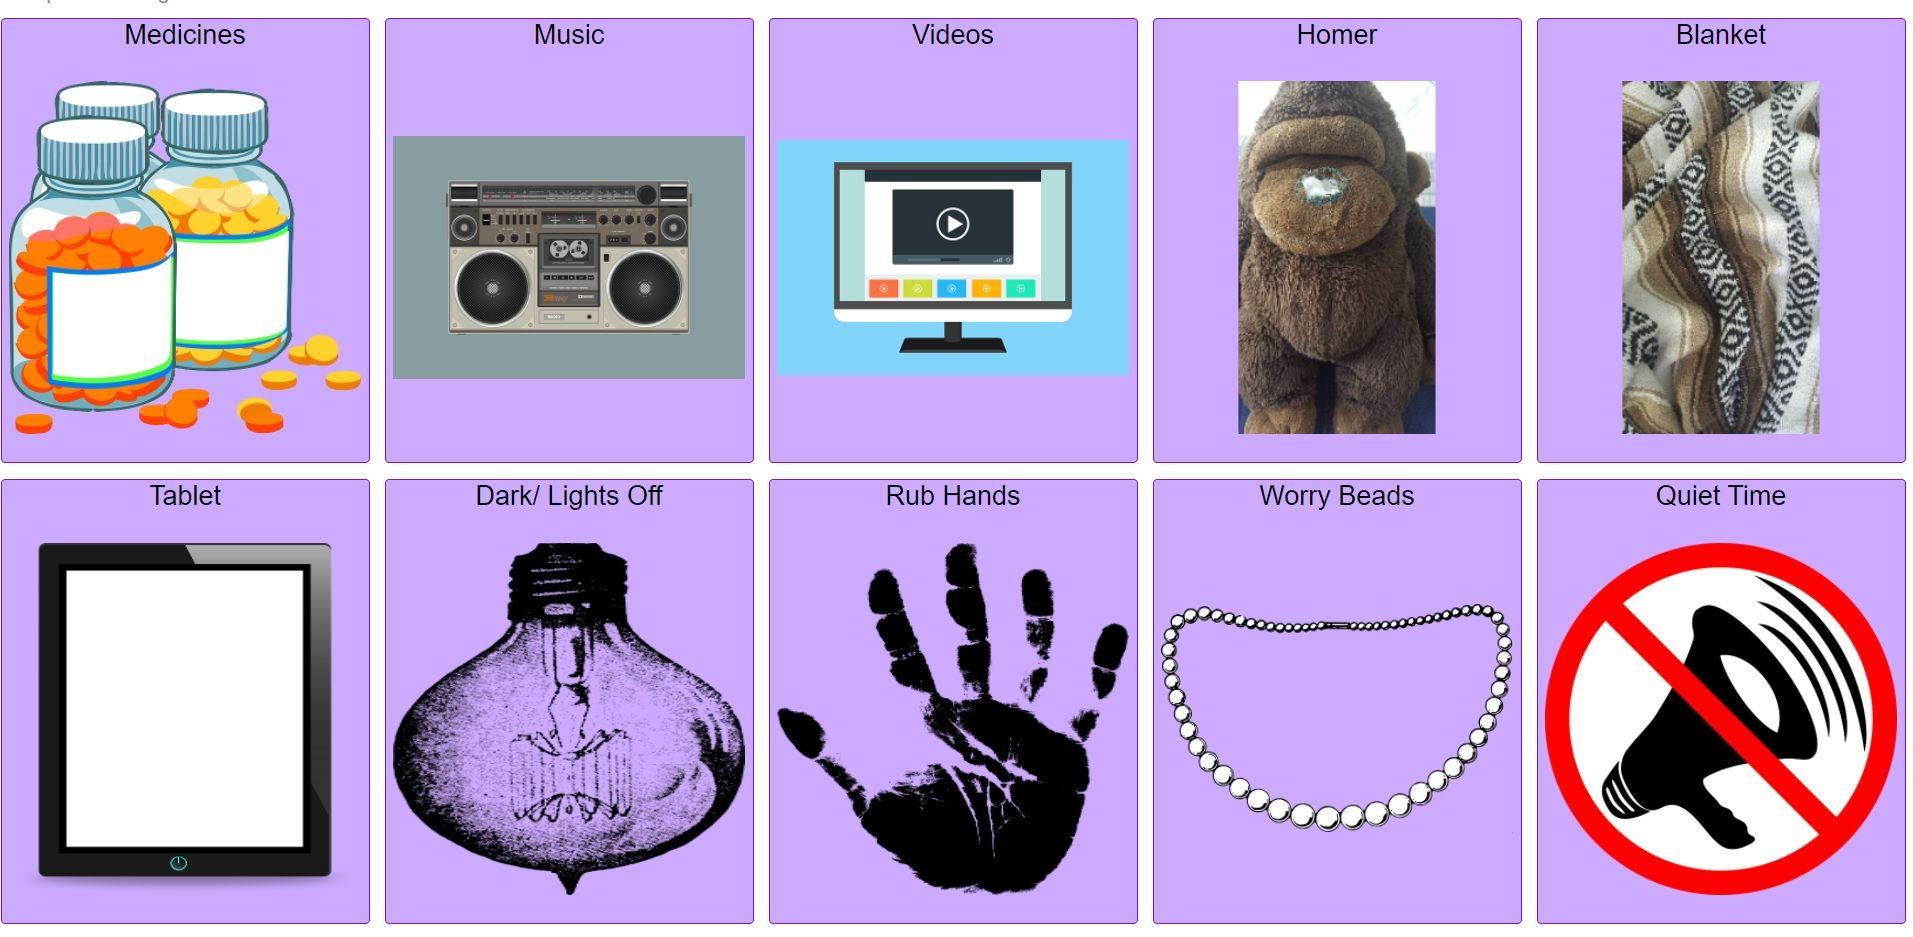 """AAC speech board with 10 buttons, each with a purple background.  The button labels include """"medicines"""" with a picture of pill bottles, """"music"""" with a pciture of a boom box, """"videos"""" with a picture of a screen with video ready to play, """"Homer"""" with a picture of a stuffed gorilla, """"blanket"""" with a picture of a blanket, """"tablet"""" with a picture of a tablet, """"dark/light off"""" with a picture of a dark bulb, """"rub hands"""" with a picture of a hand, """"worry beads"""" with a picture of a string of beads, and """"quiet time"""" with a picture of a megaphone crossed out."""